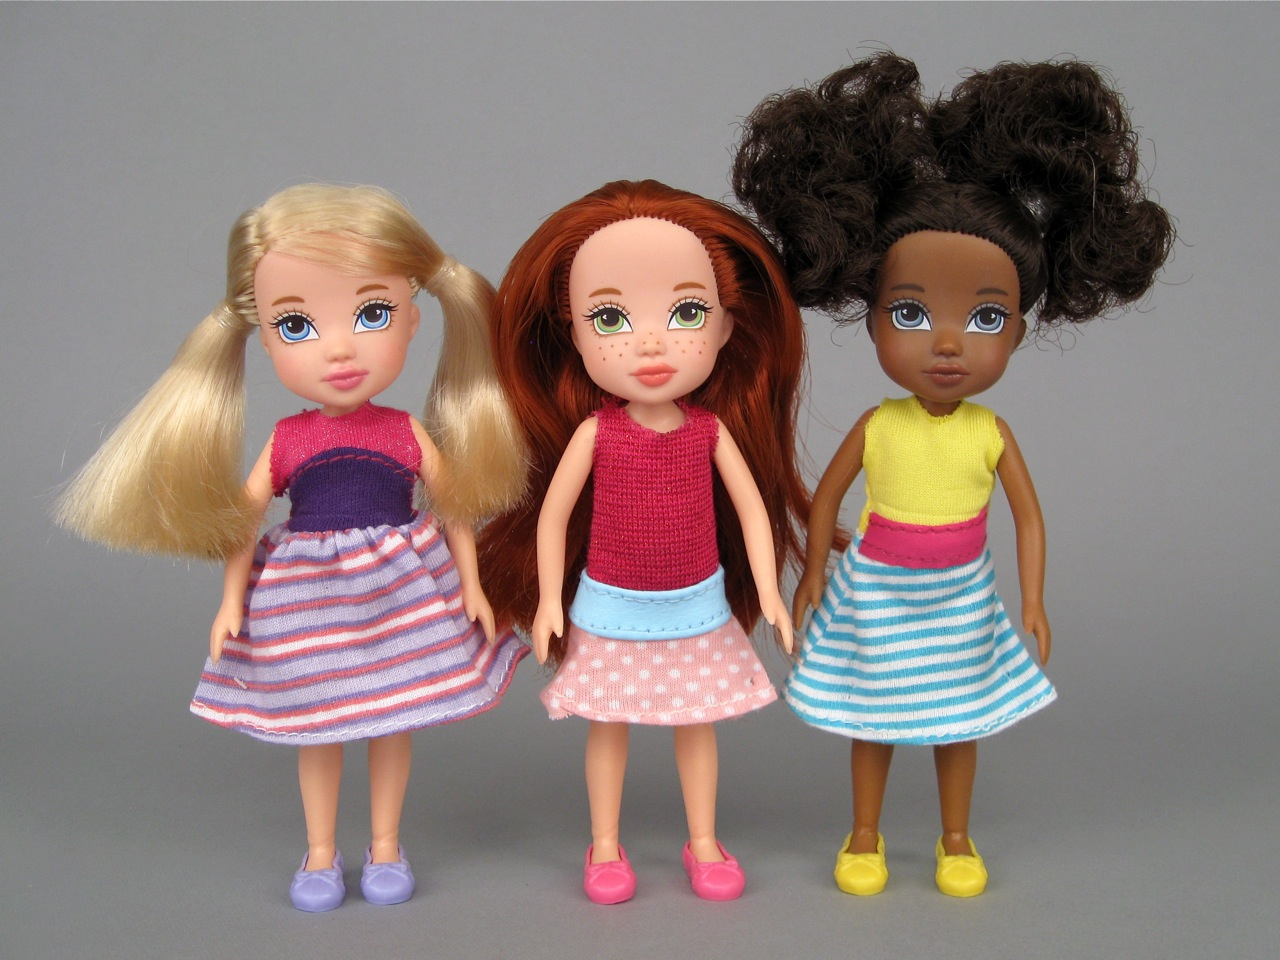 Mini Dolls | My Life As